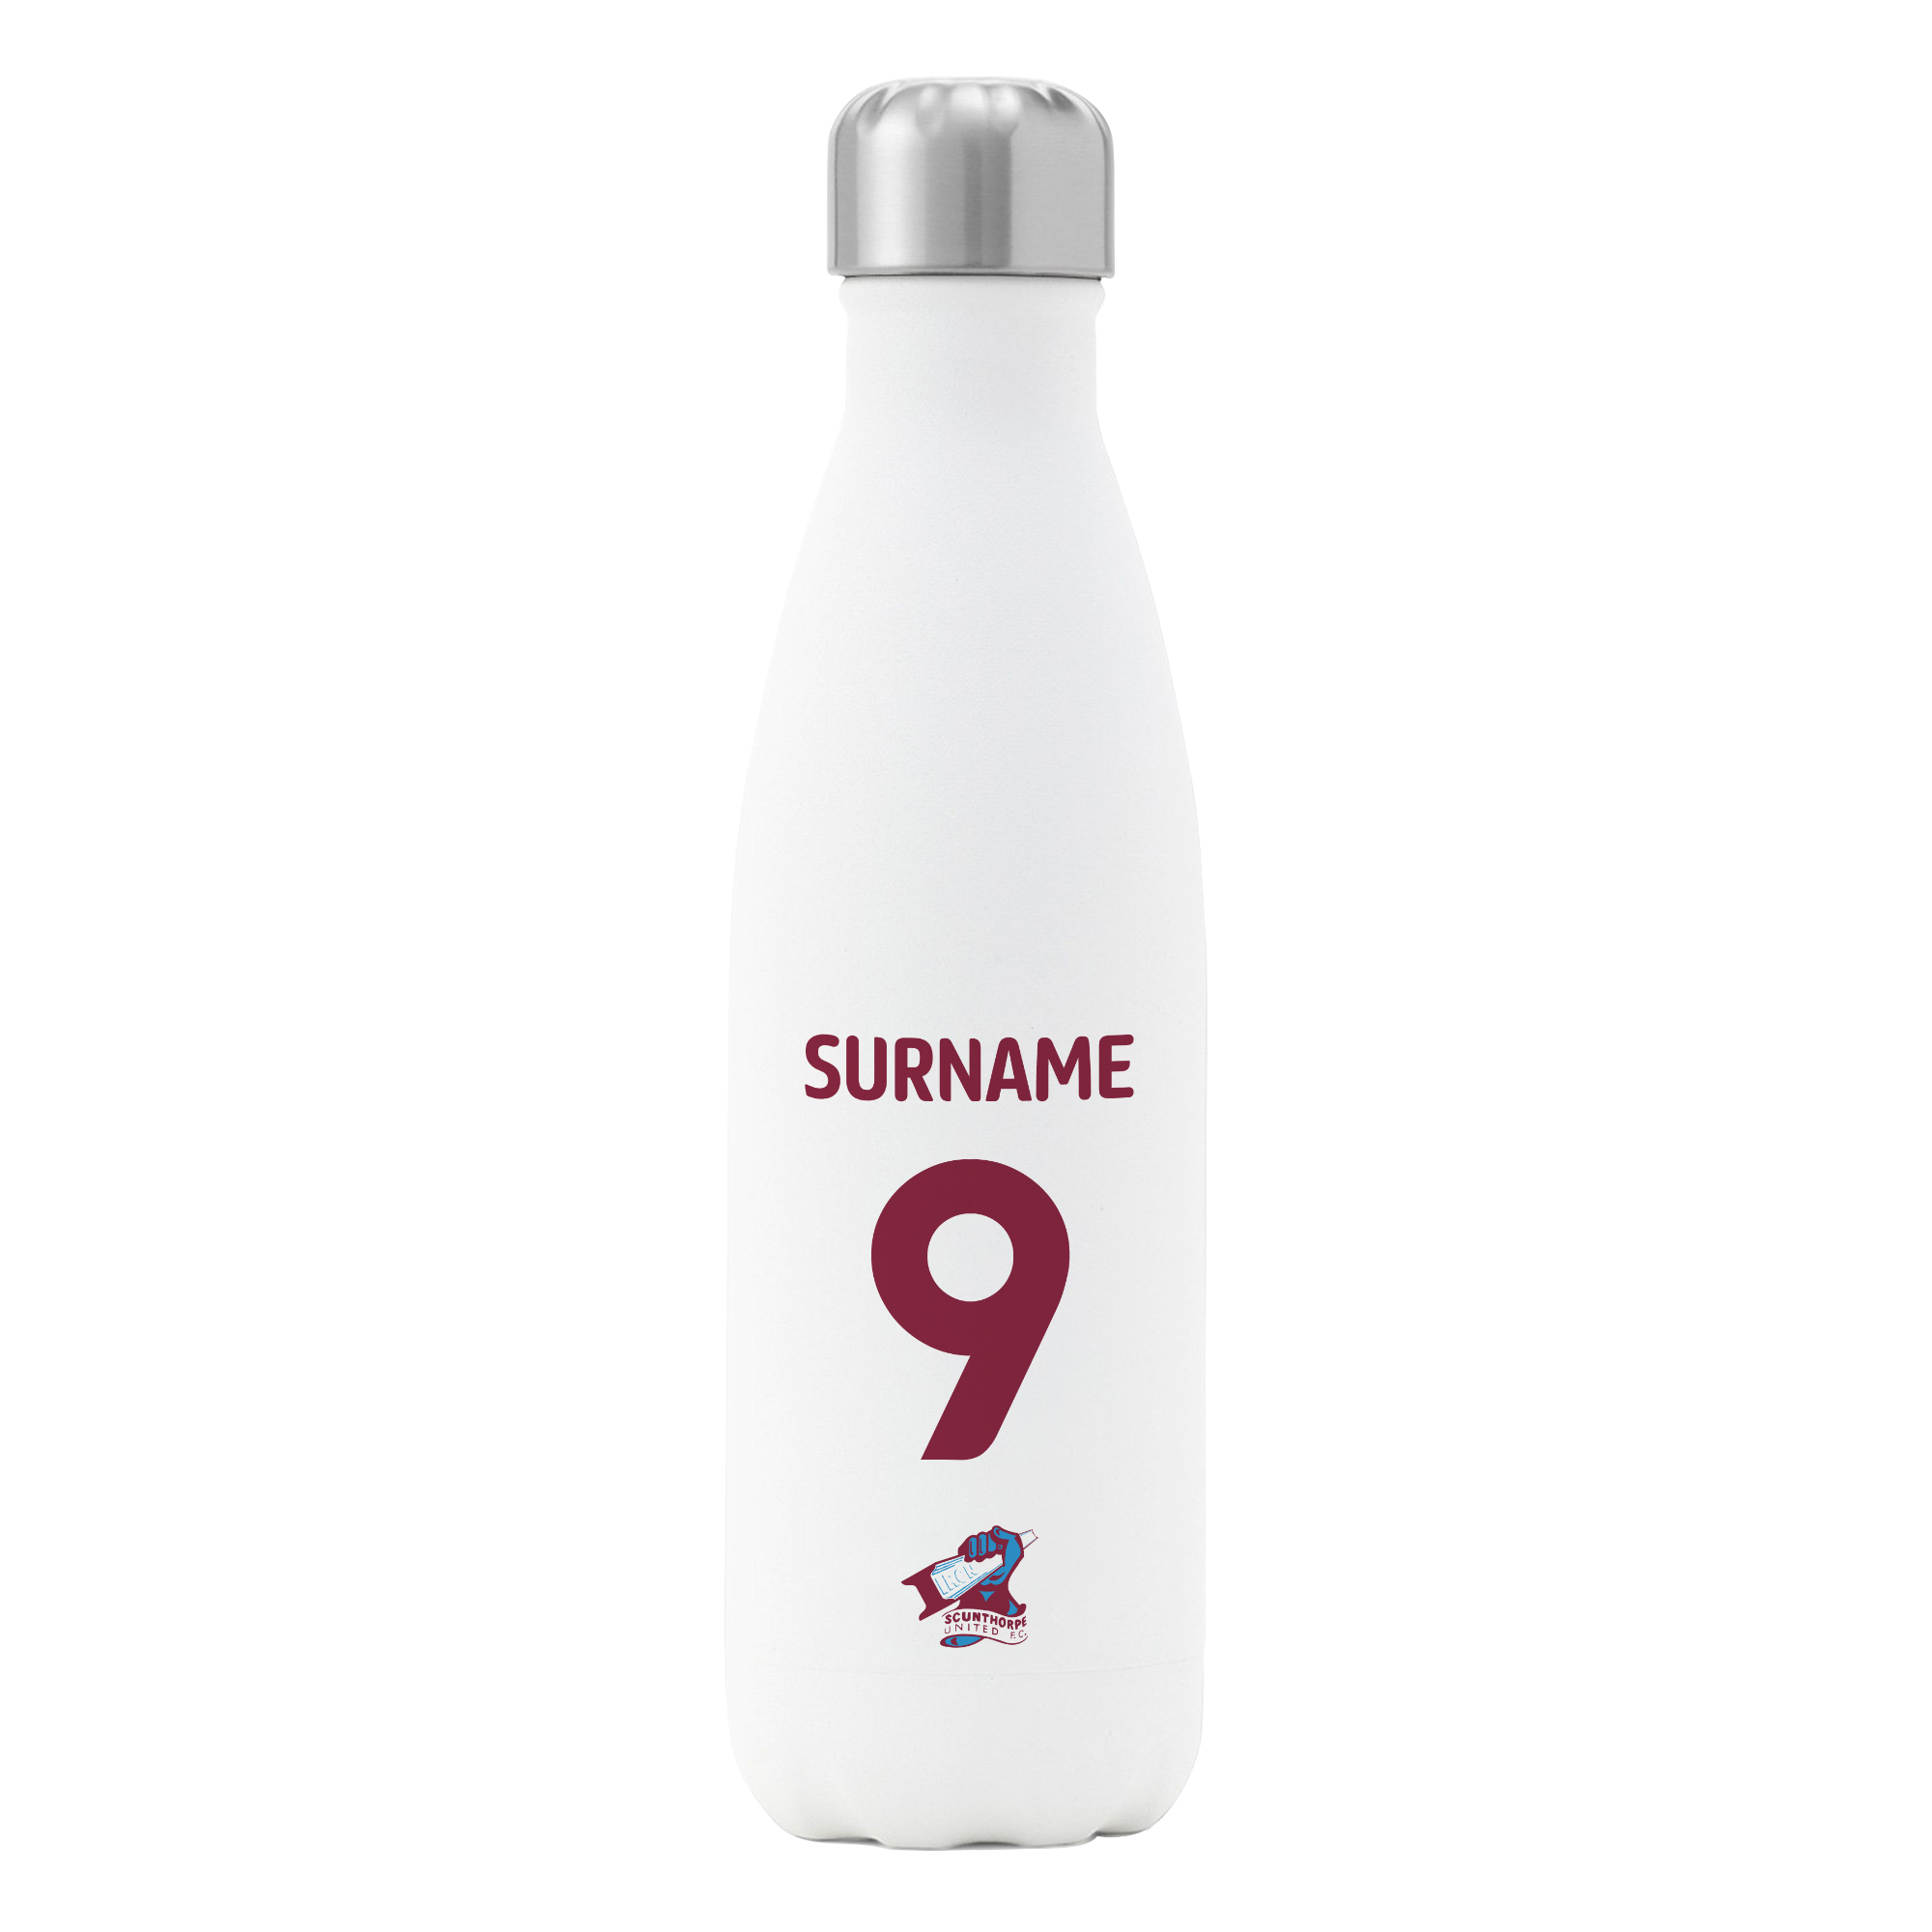 Scunthorpe United FC Back of Shirt Insulated Water Bottle - White